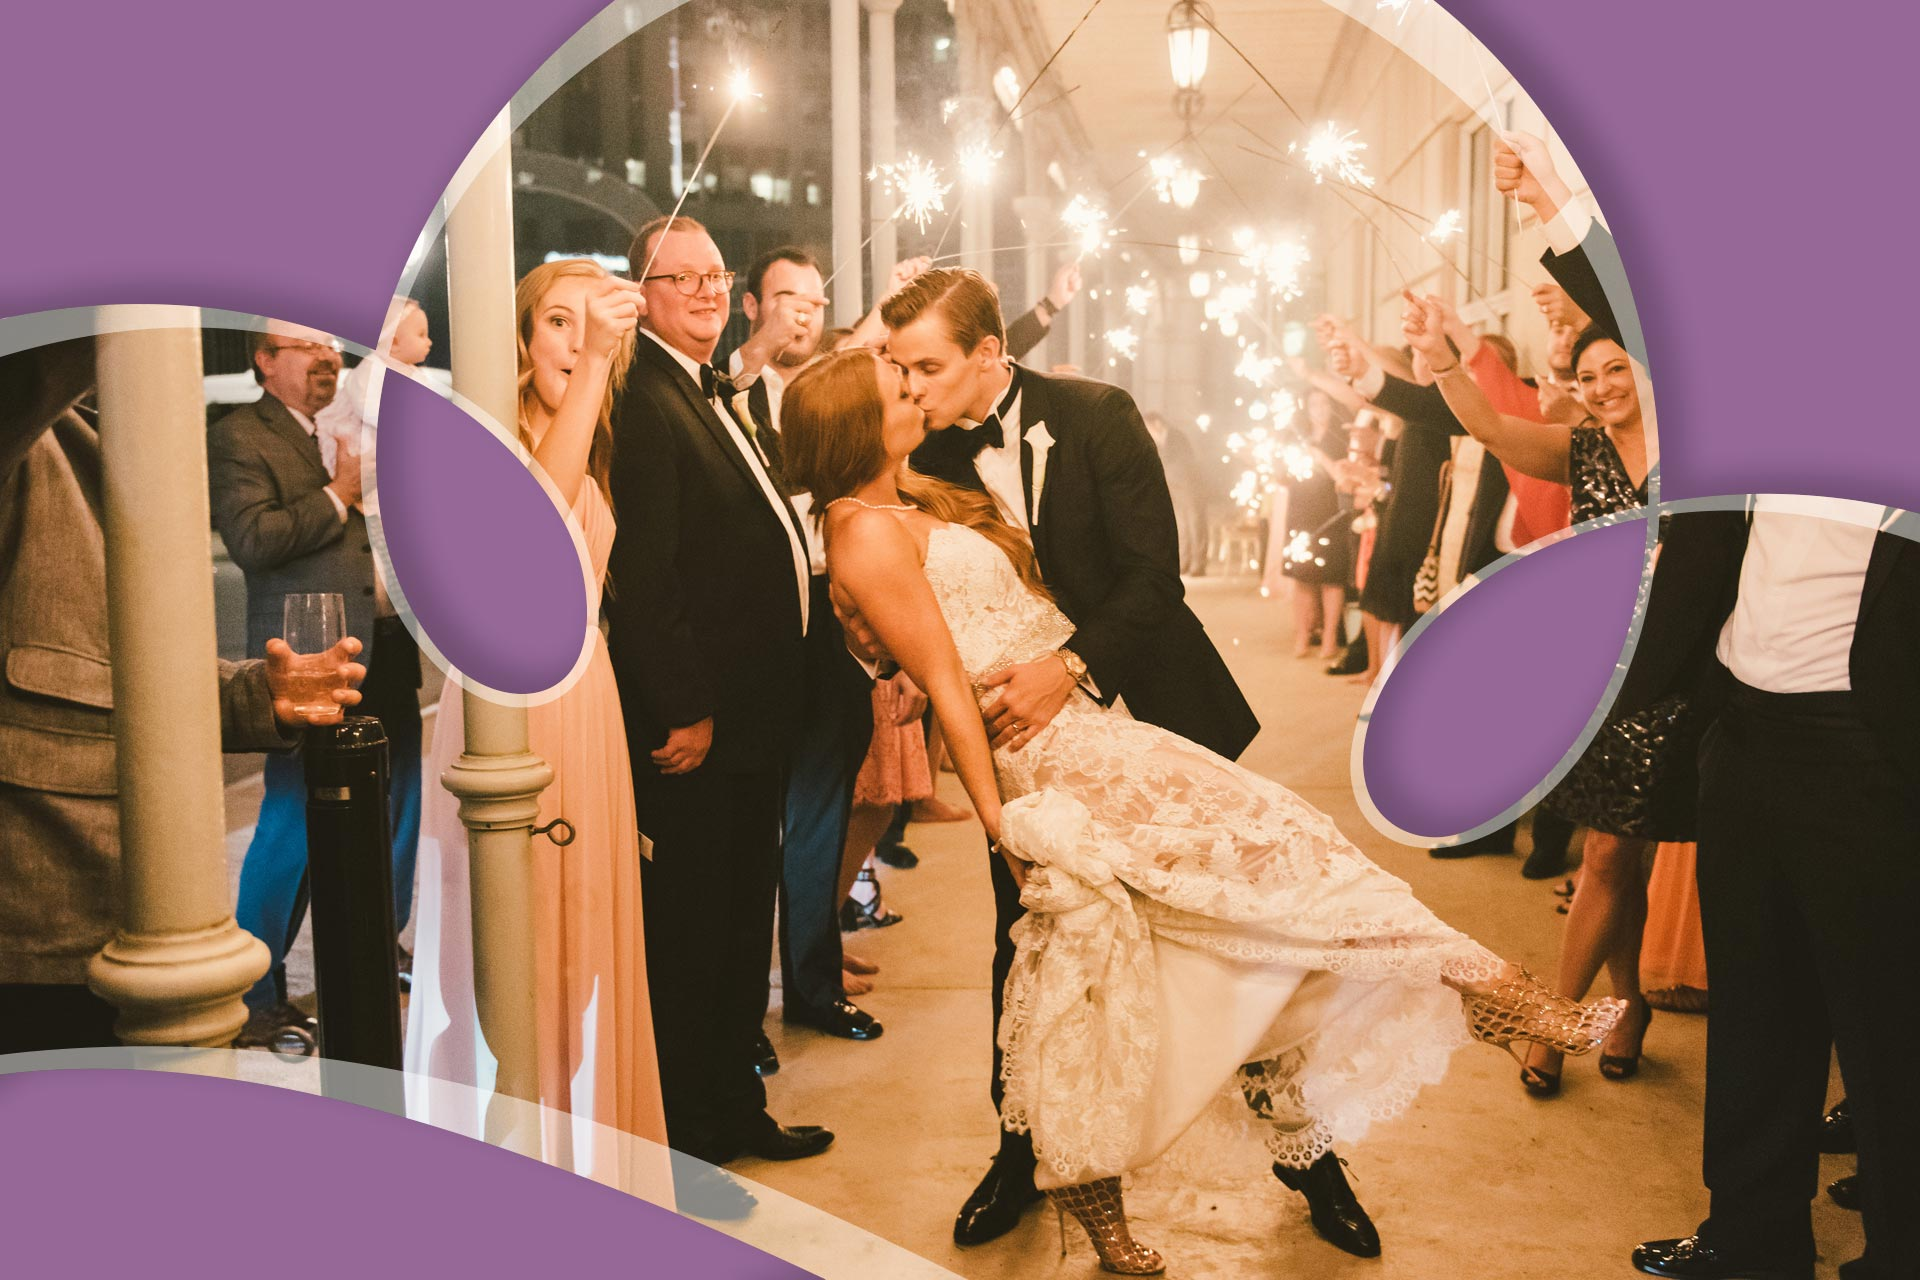 just married wedding couple kissing after wedding sparklers tunnel ricardo tomas weddings event planner